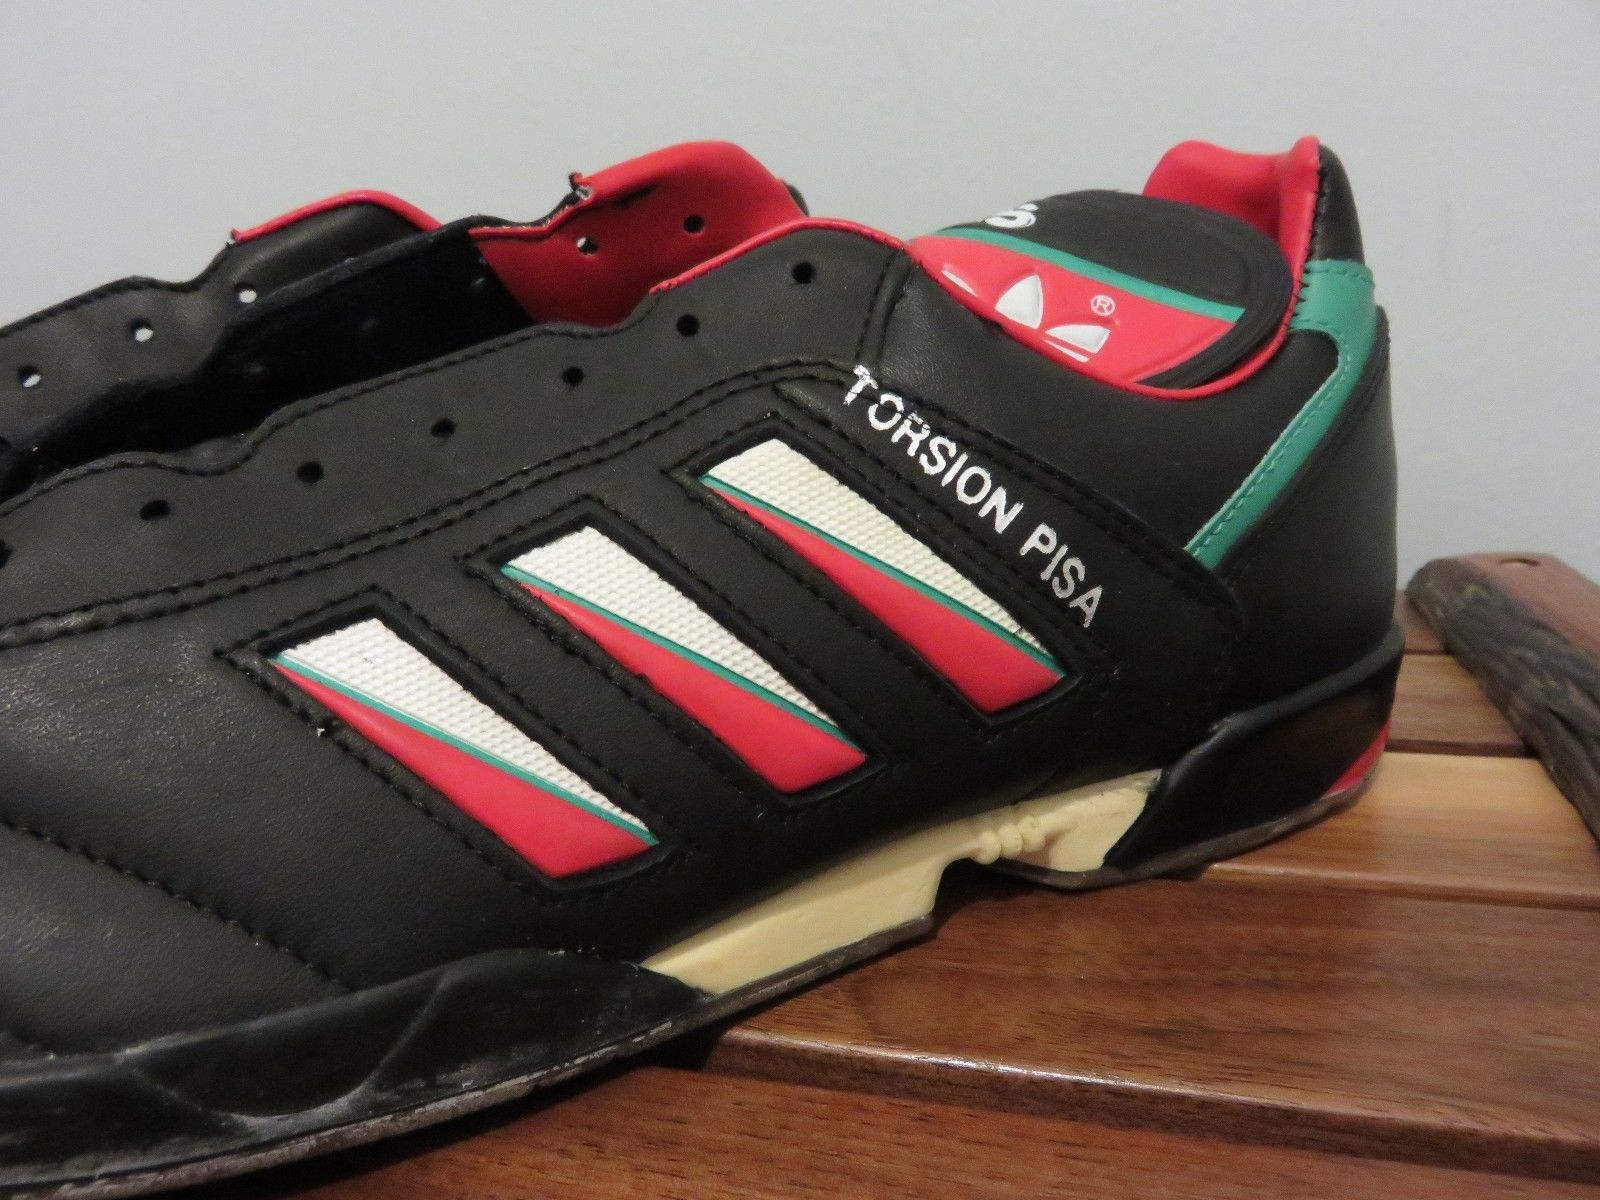 8e95717fb54 NOS NWT Adidas Torsion PISA Soccer Shoes Extremely RARE Tri-Foil 1990 World  Cup